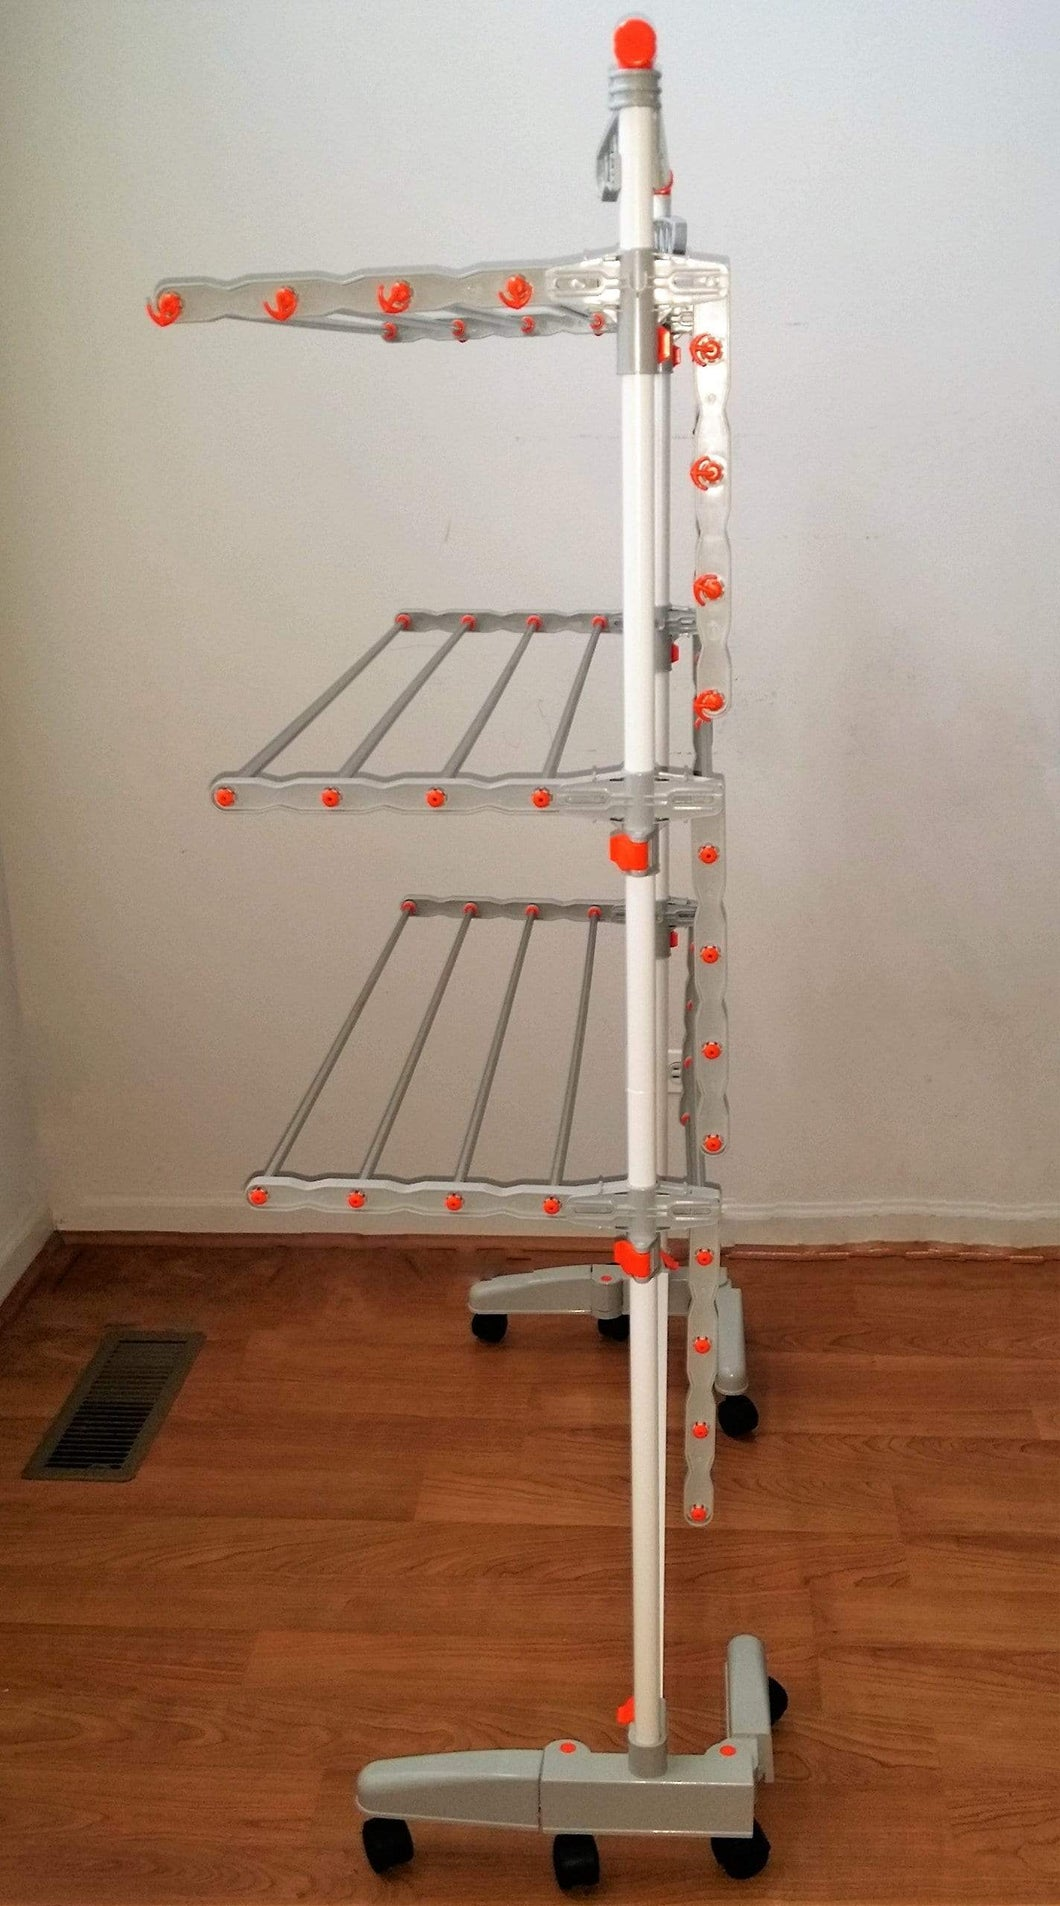 Discover the idee bdp v23 foldable rolling 3 tier clothes laundry drying rack with stainless steel hanging rods collapsible shelves and base for easy storage made in korea premium size orange